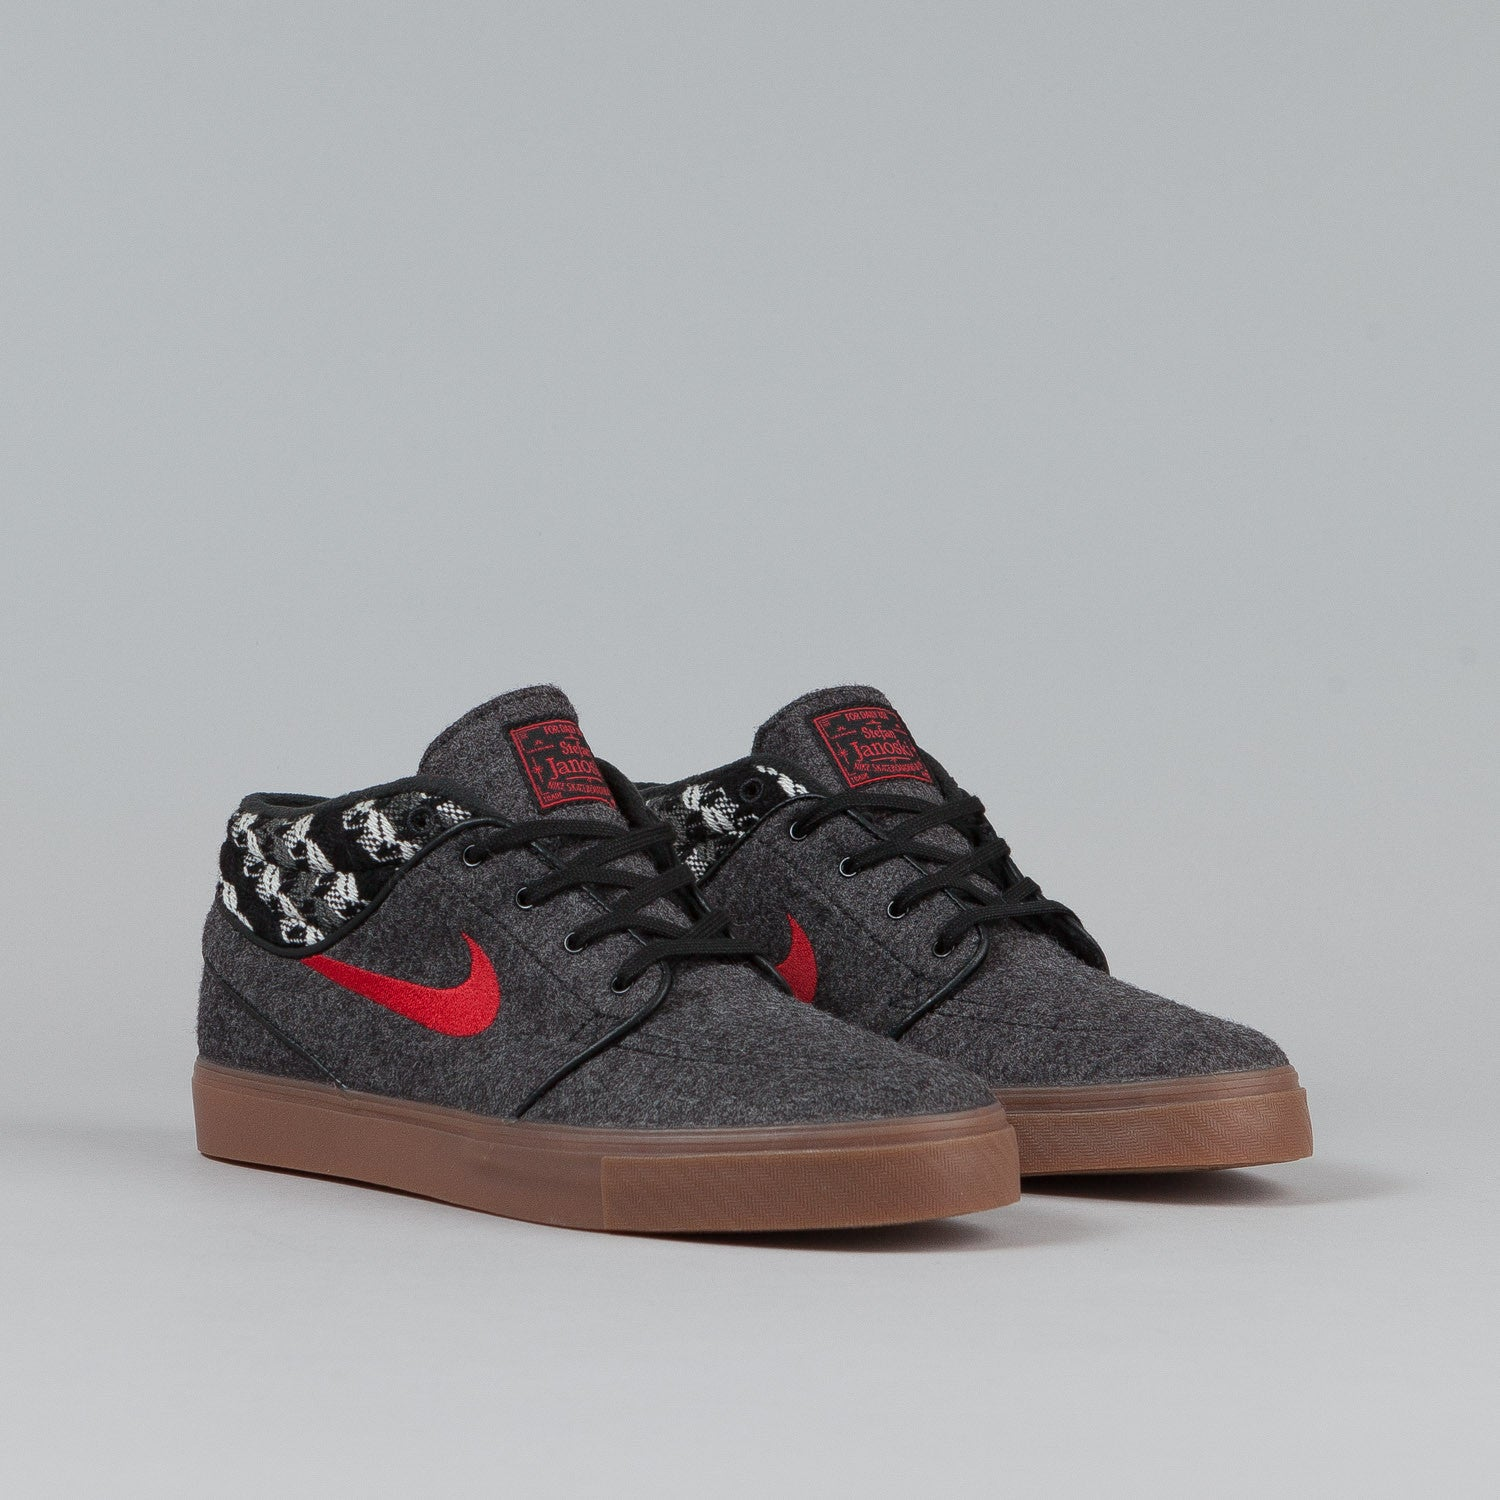 Nike SB Stefan Janoski Mid Shoes Black / Gym Red - Warmth Pack